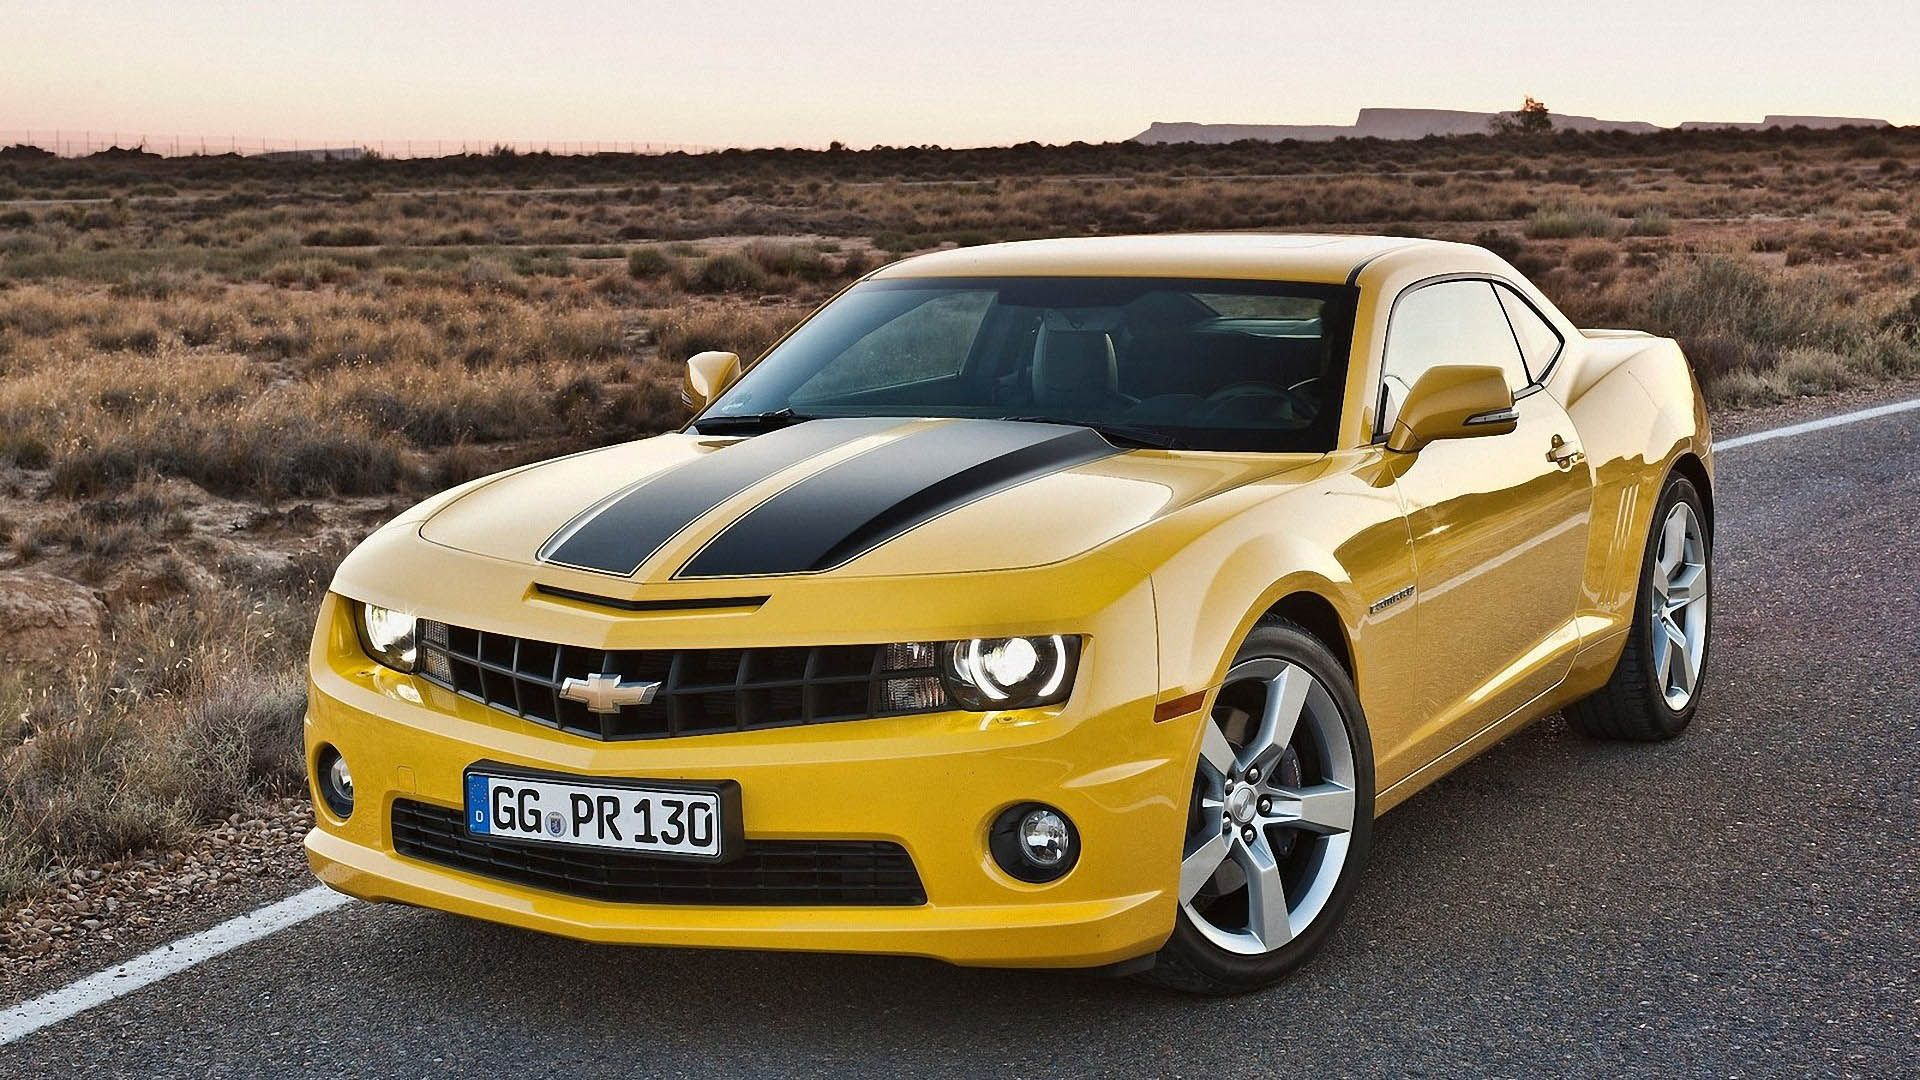 My dream car is a 2012 15 model year chevy camaro it has been ever my dream car is a 2012 15 model year chevy camaro it has been publicscrutiny Gallery